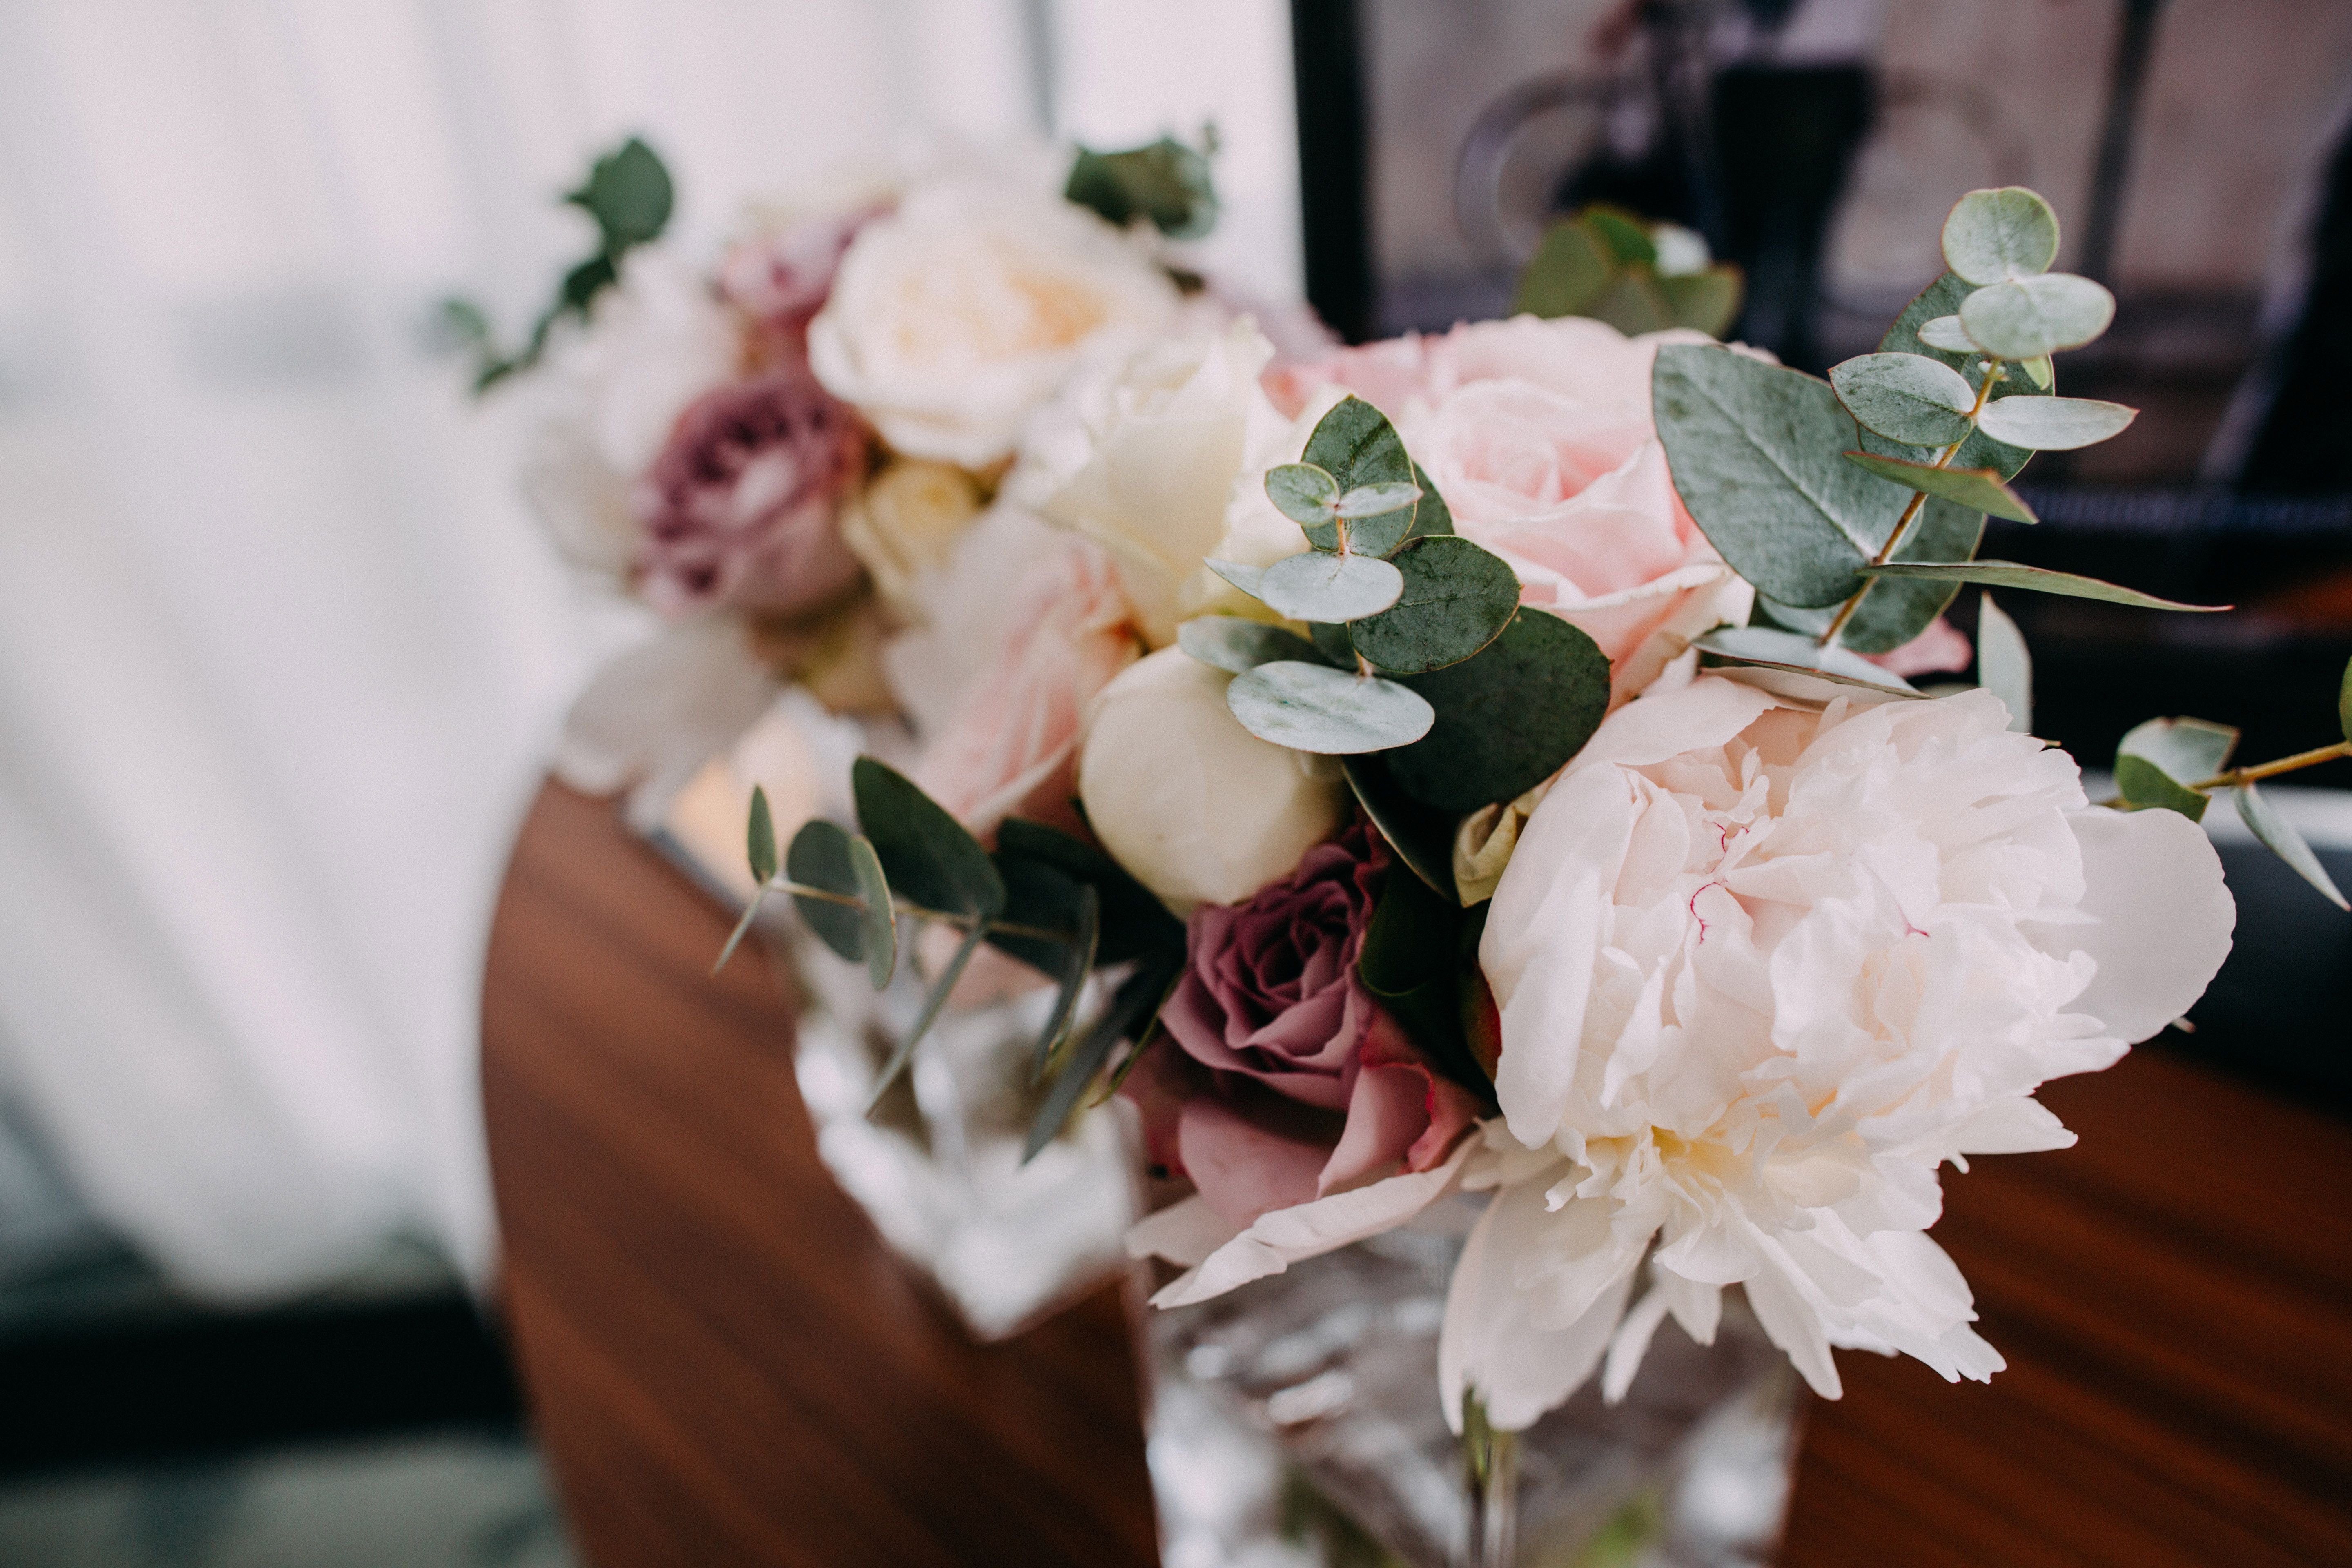 Wedding decorations checklist  Stunning flower compositions make the wedding ceremony even more